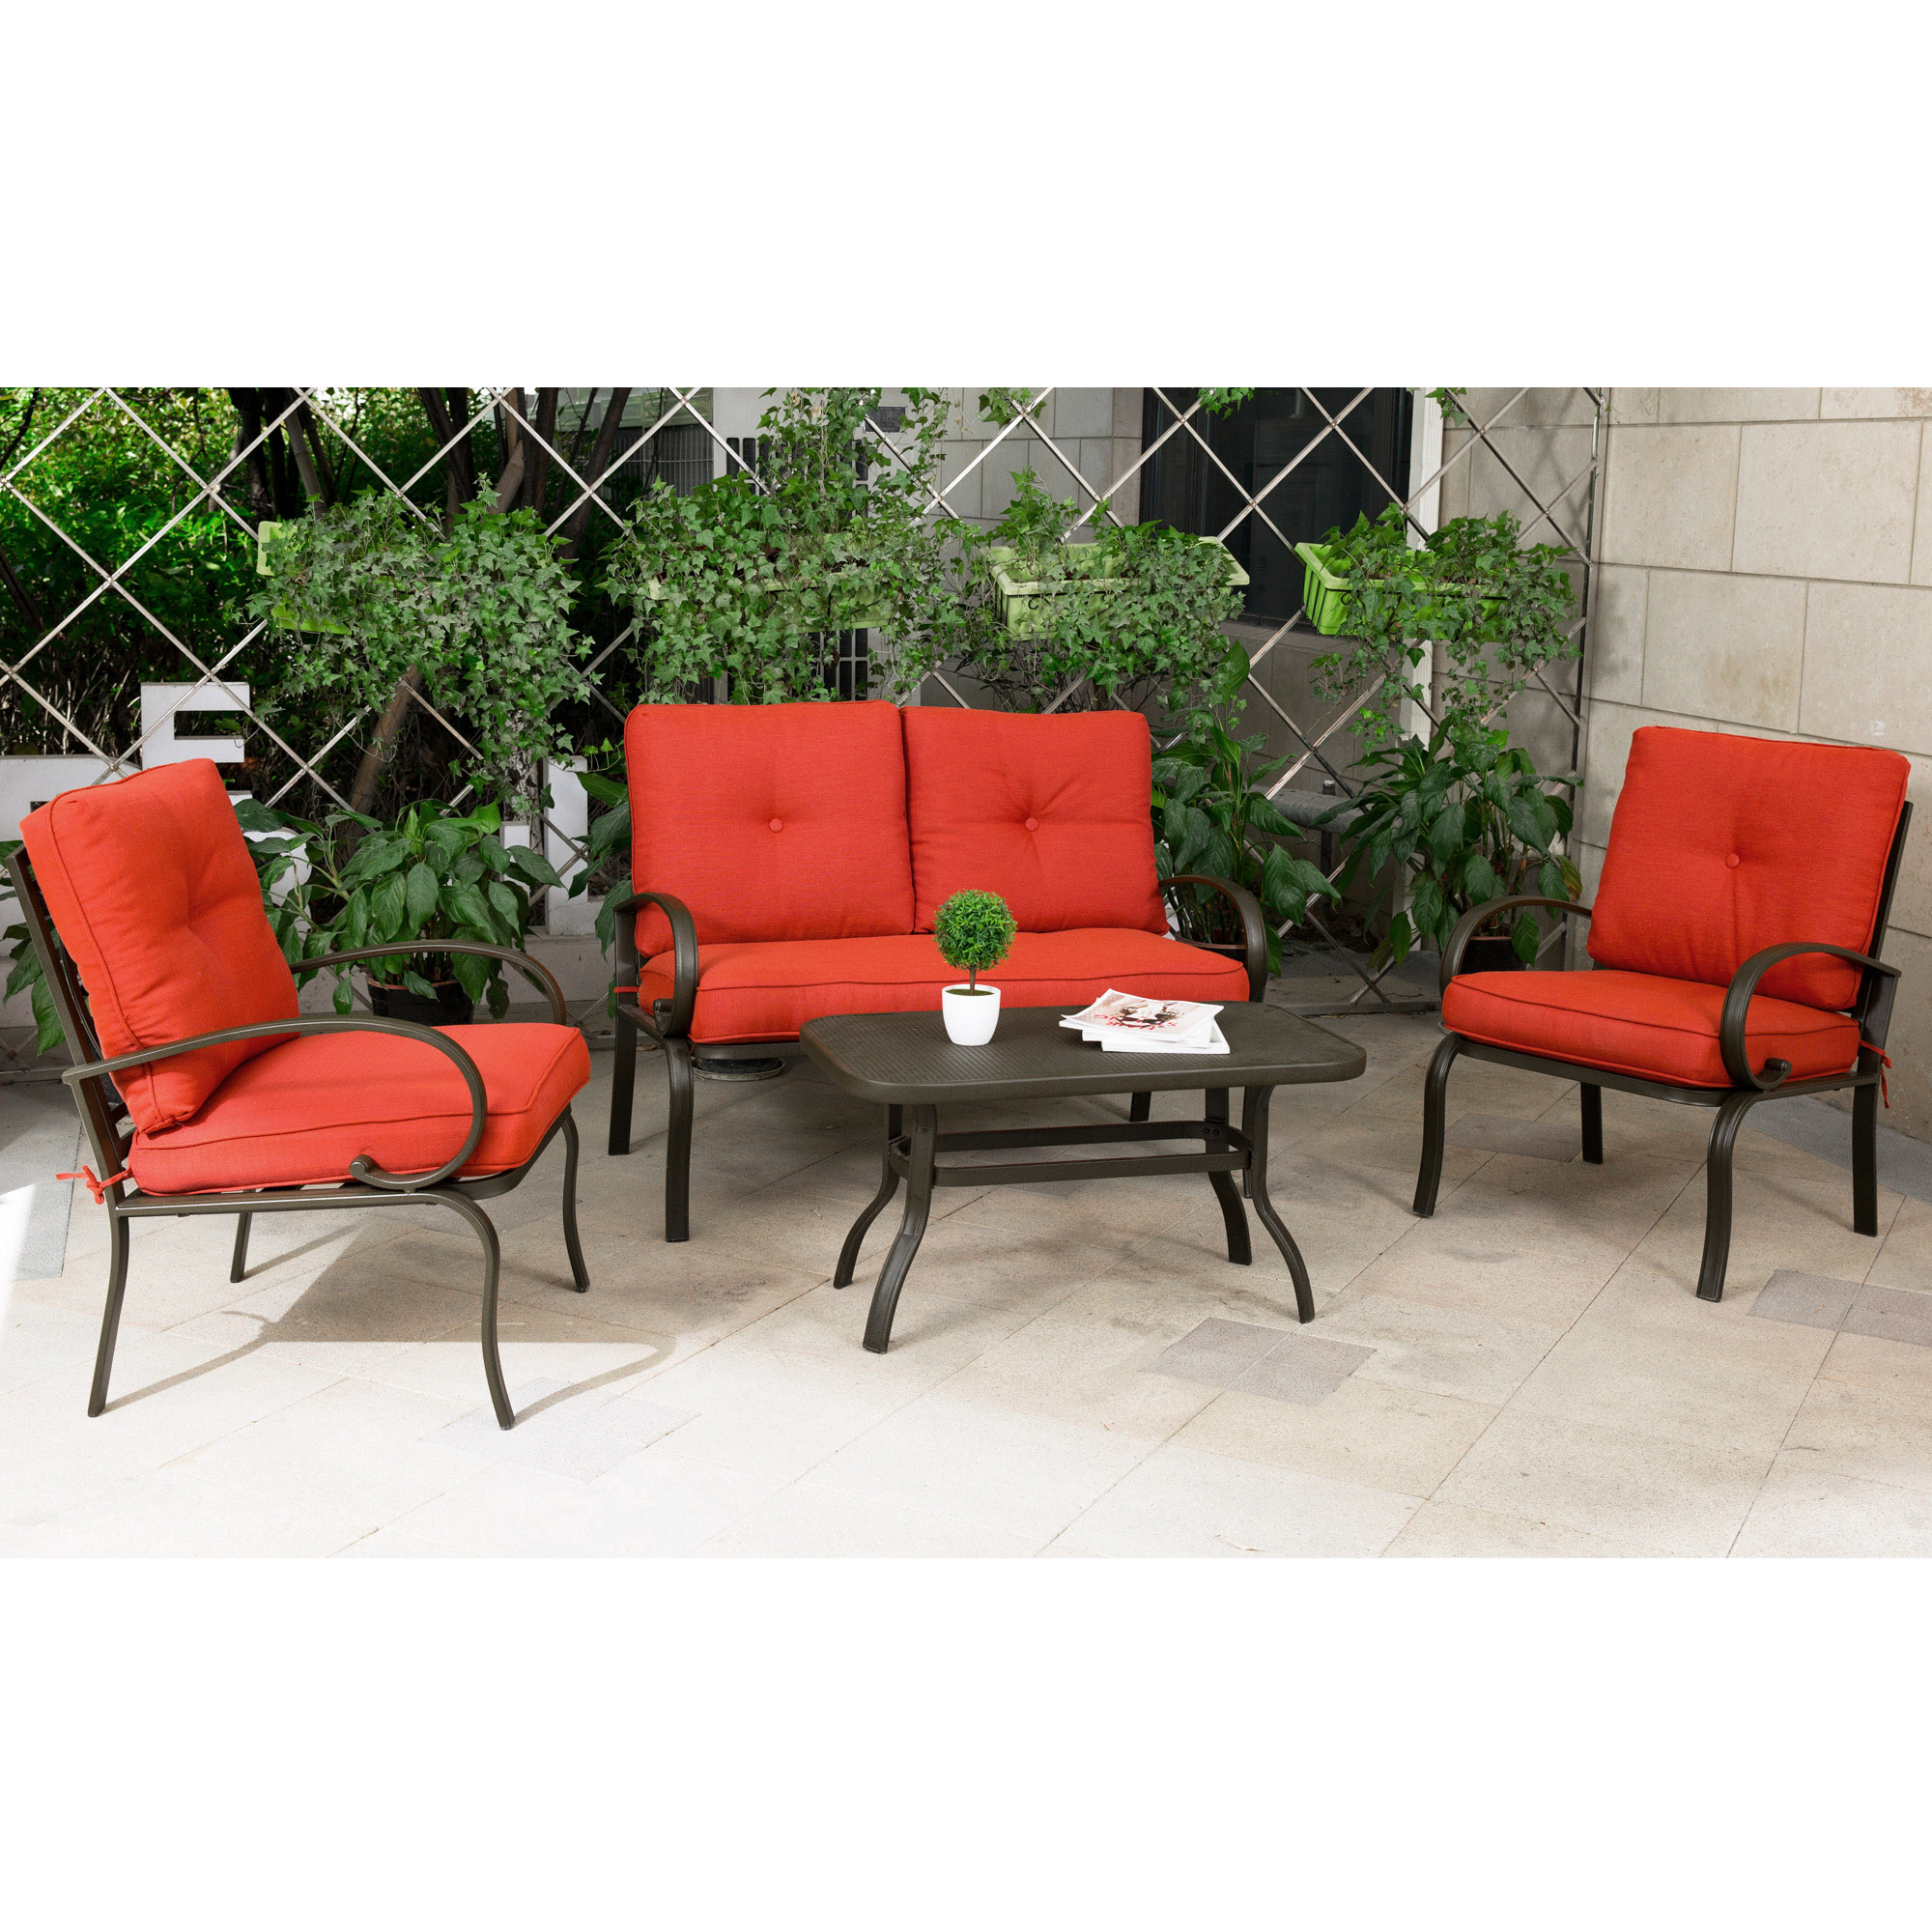 Wrought iron patio chairs Rot Iron Cloud Mountain Garden Patio Conversation Set Cushioned Outdoor Furniture Wrought Iron Coffee Table Chair Sofa Walmart Wrought Iron Patio Furniture